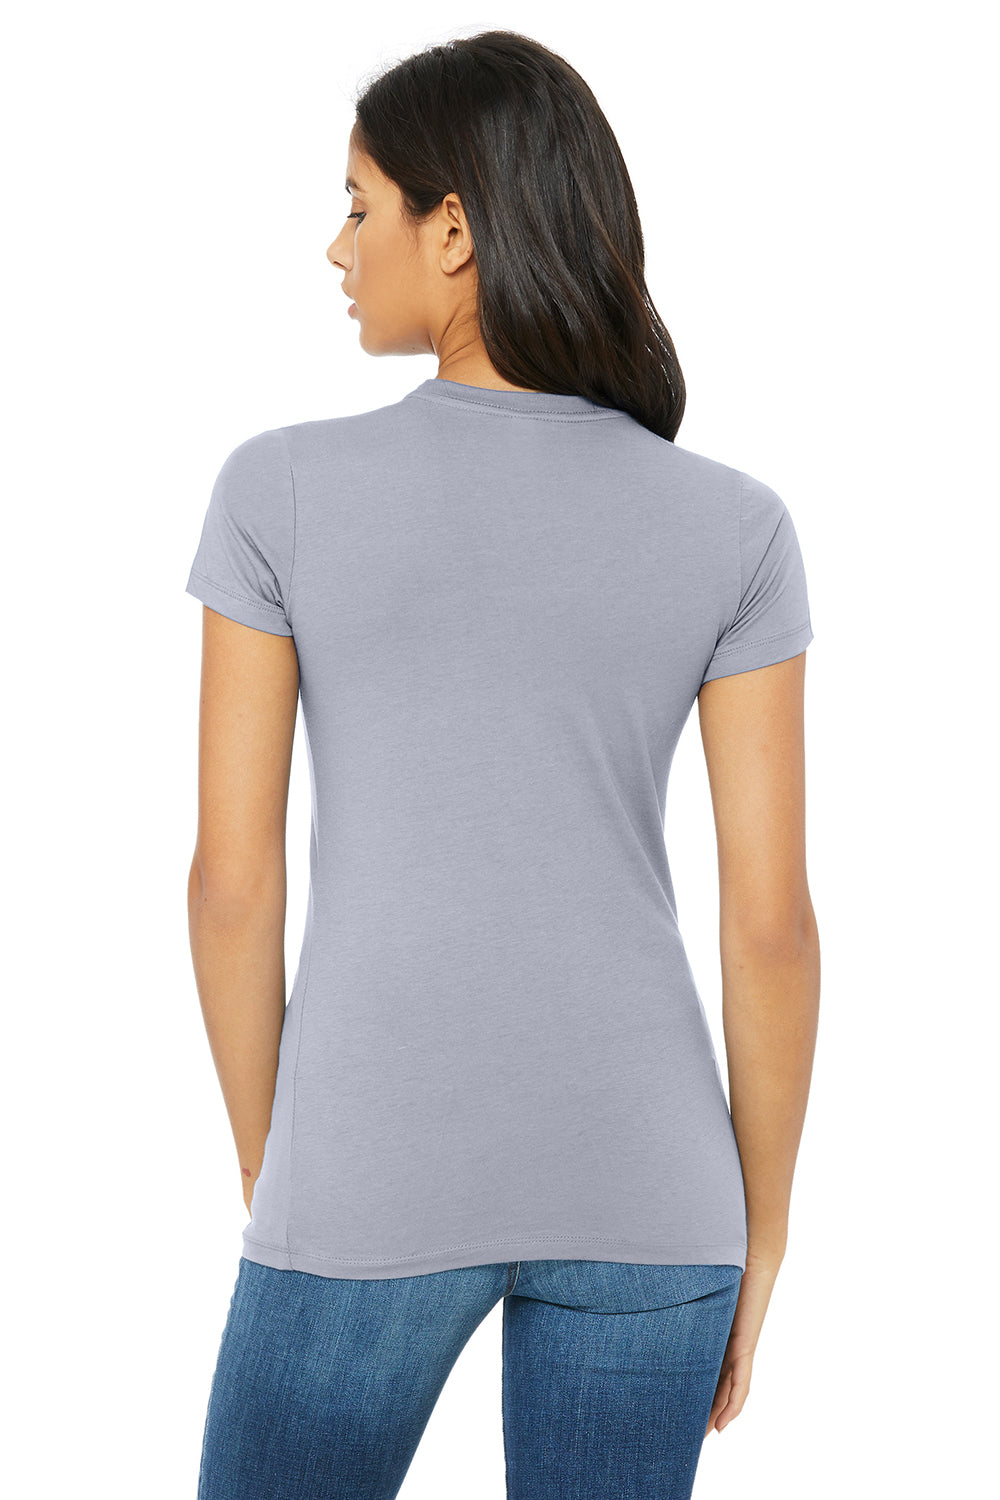 Bella + Canvas 6004 Womens The Favorite Short Sleeve Crewneck T-Shirt Heather Blue Back